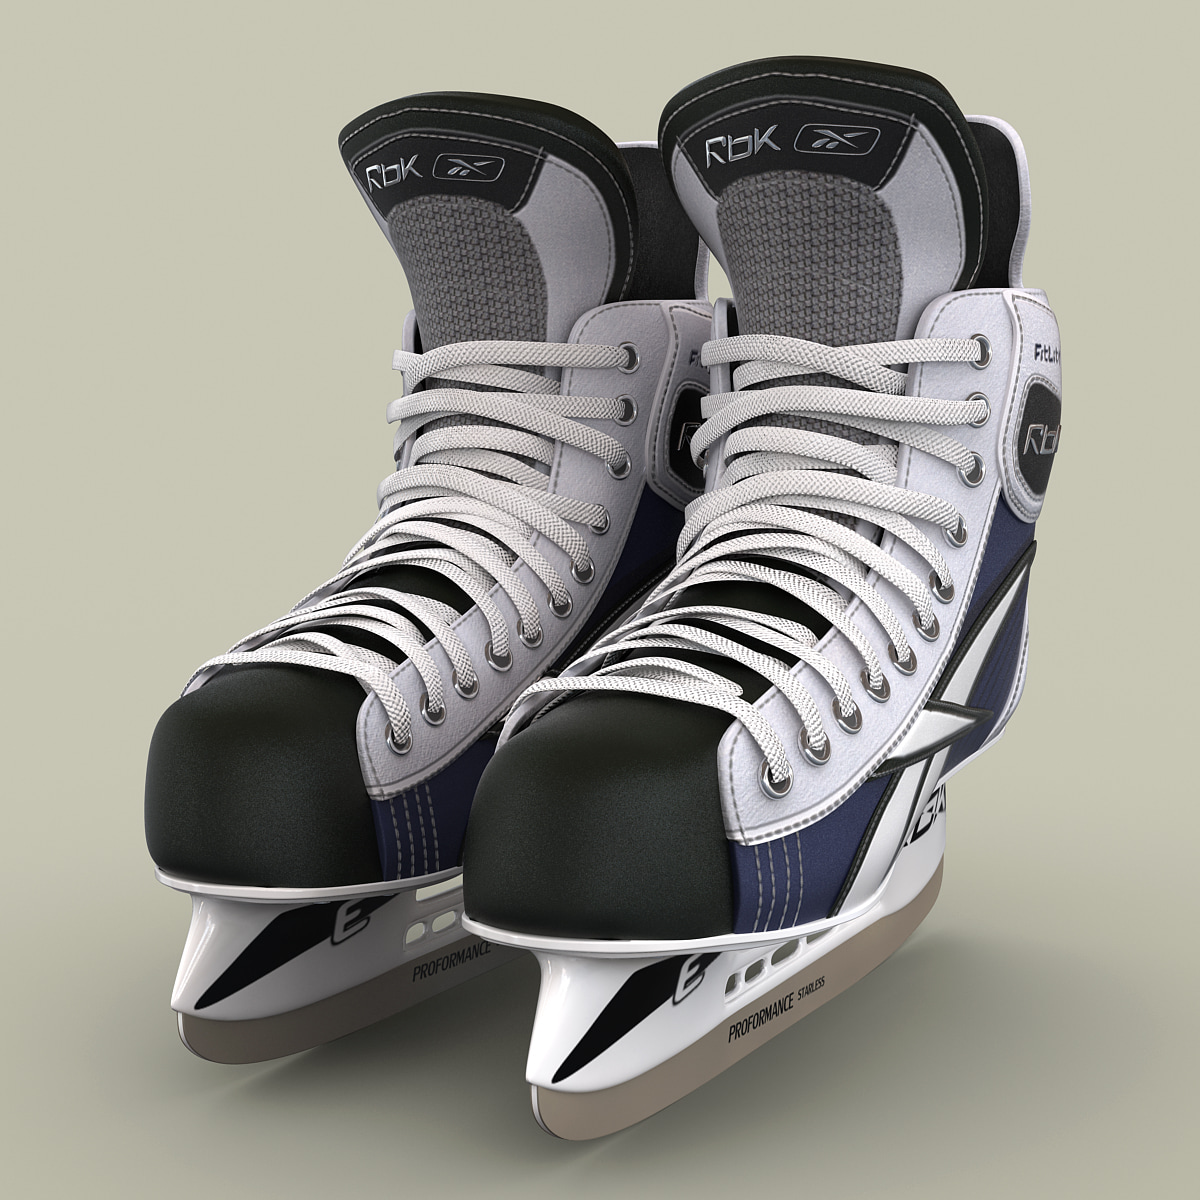 Ice_Hockey_Skates_RBK_1K_001.jpg